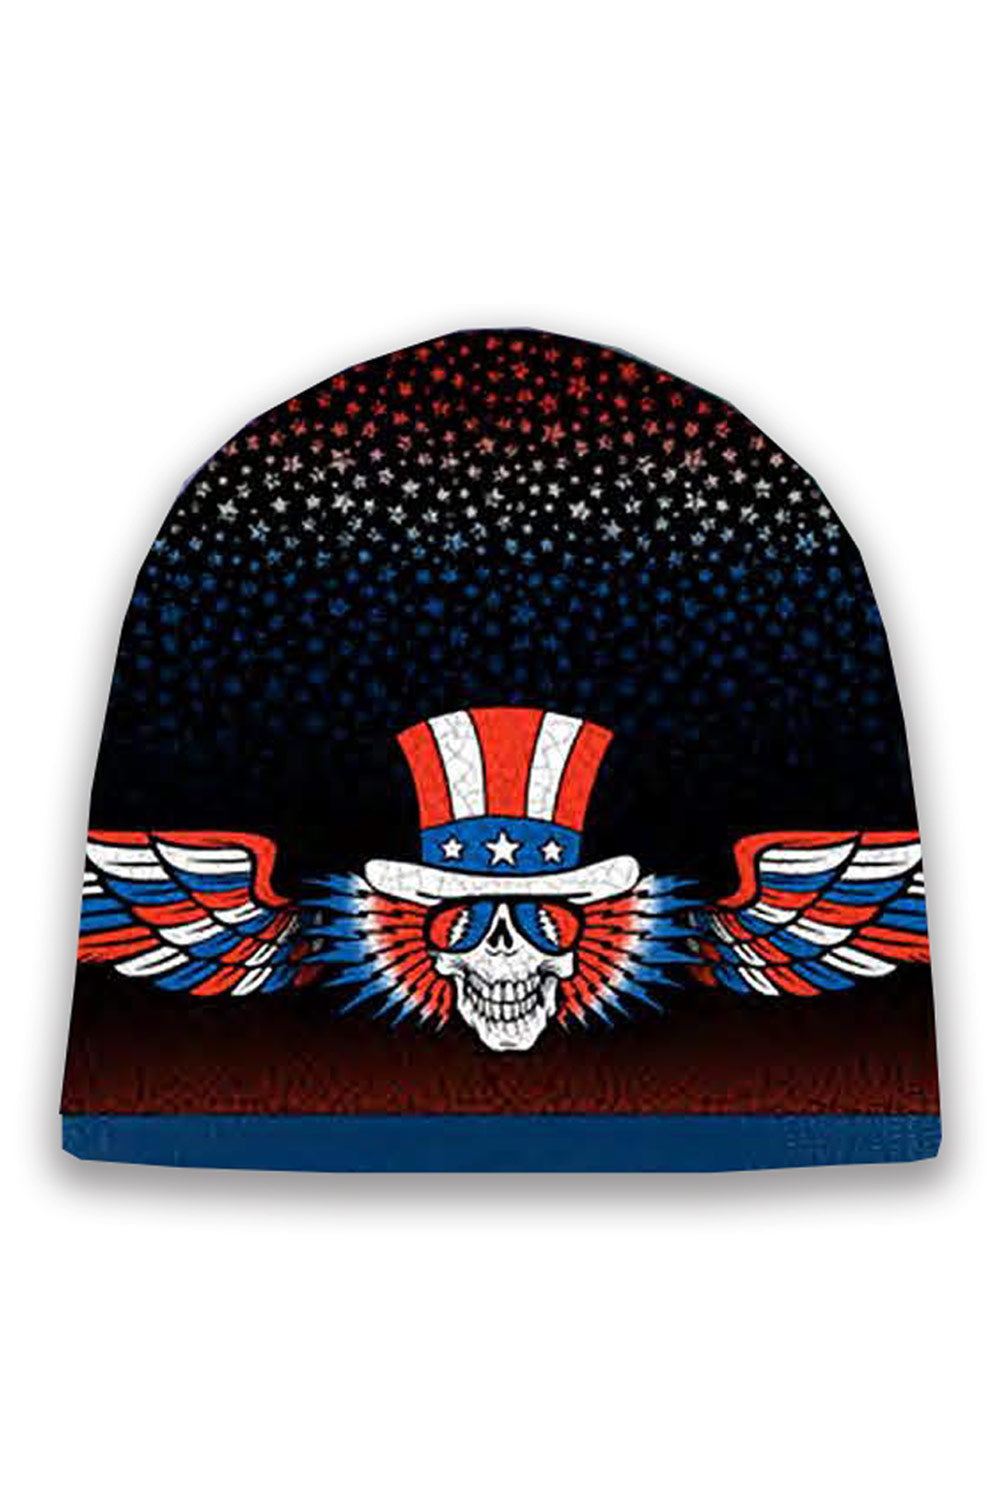 007a4831a69 Psycle Sam Knit Beanie Hat on Black